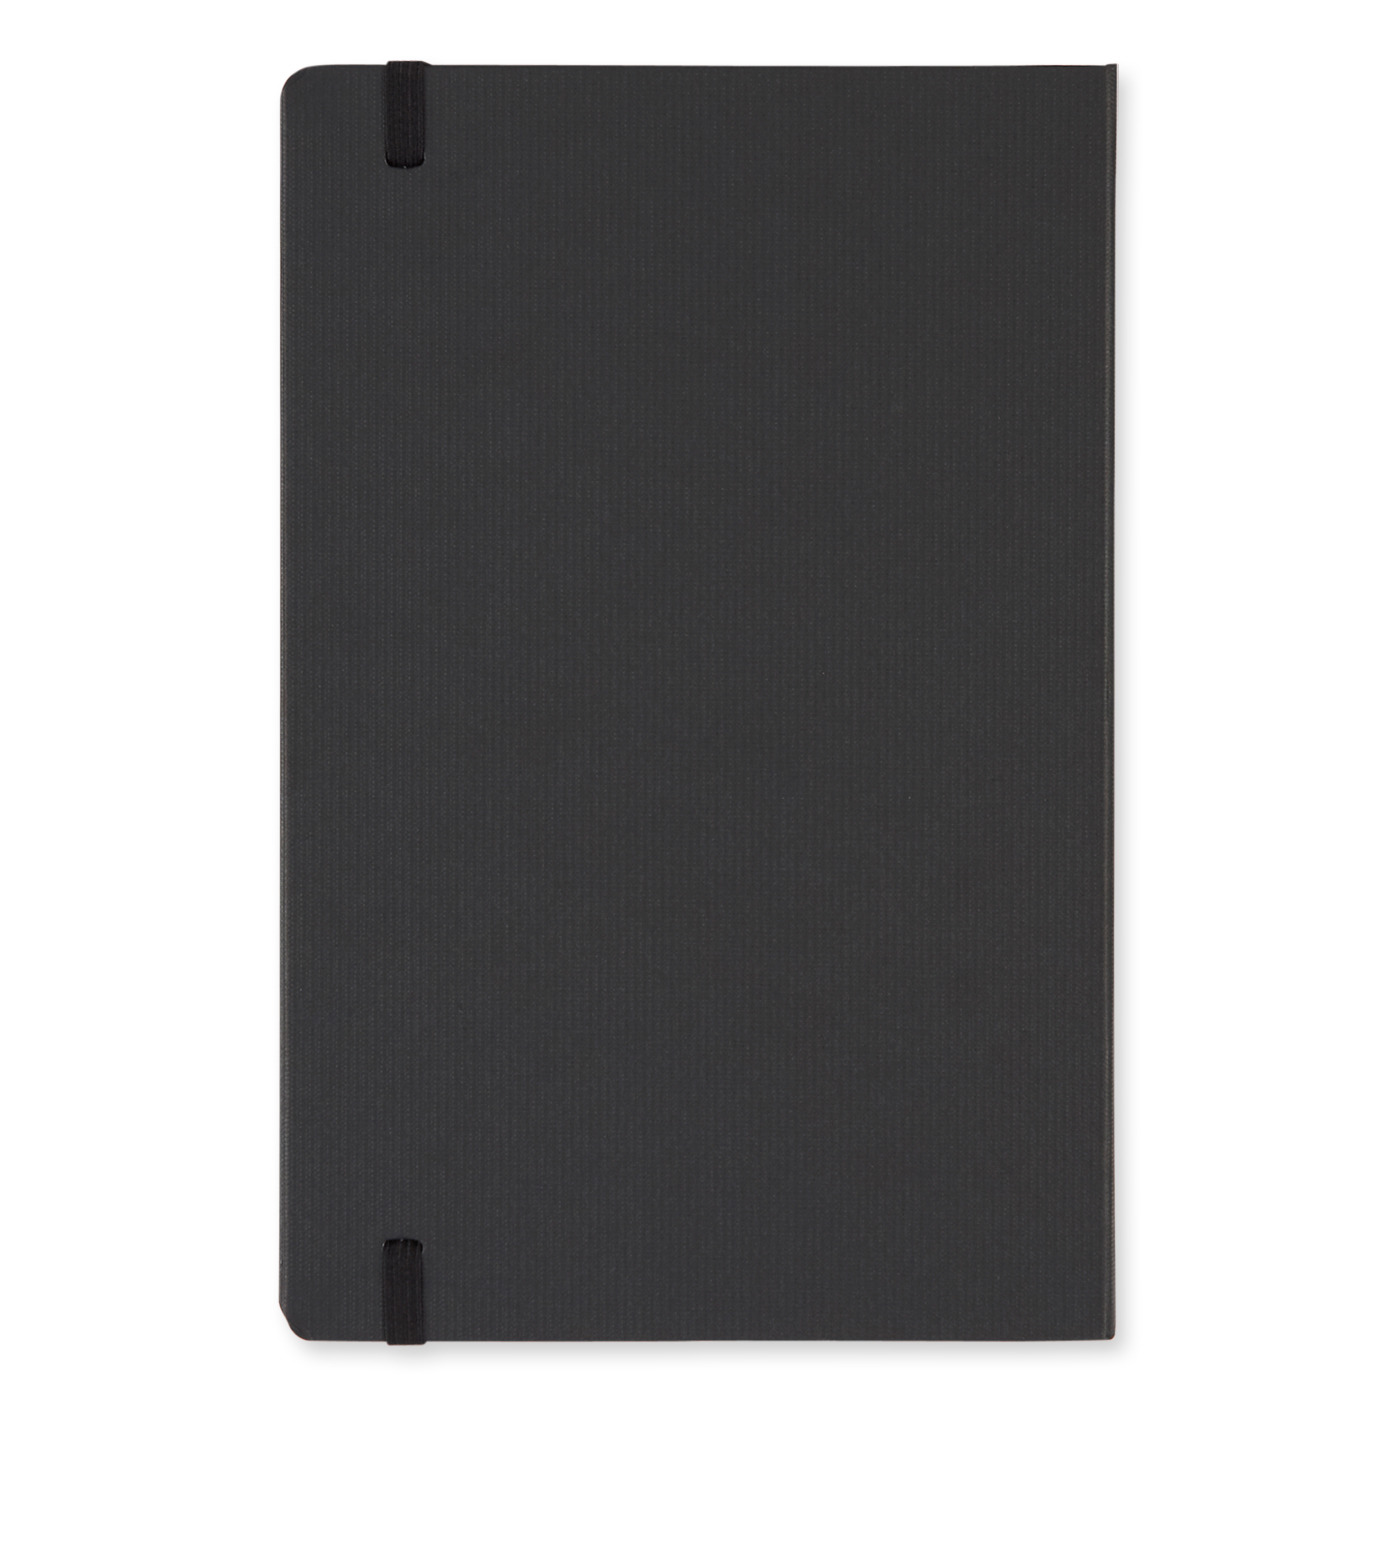 Fashematical(ファシェマティカル)のNote book-NONE(OTHER-GOODS/OTHER-GOODS)-Note-Givenchy 拡大詳細画像3